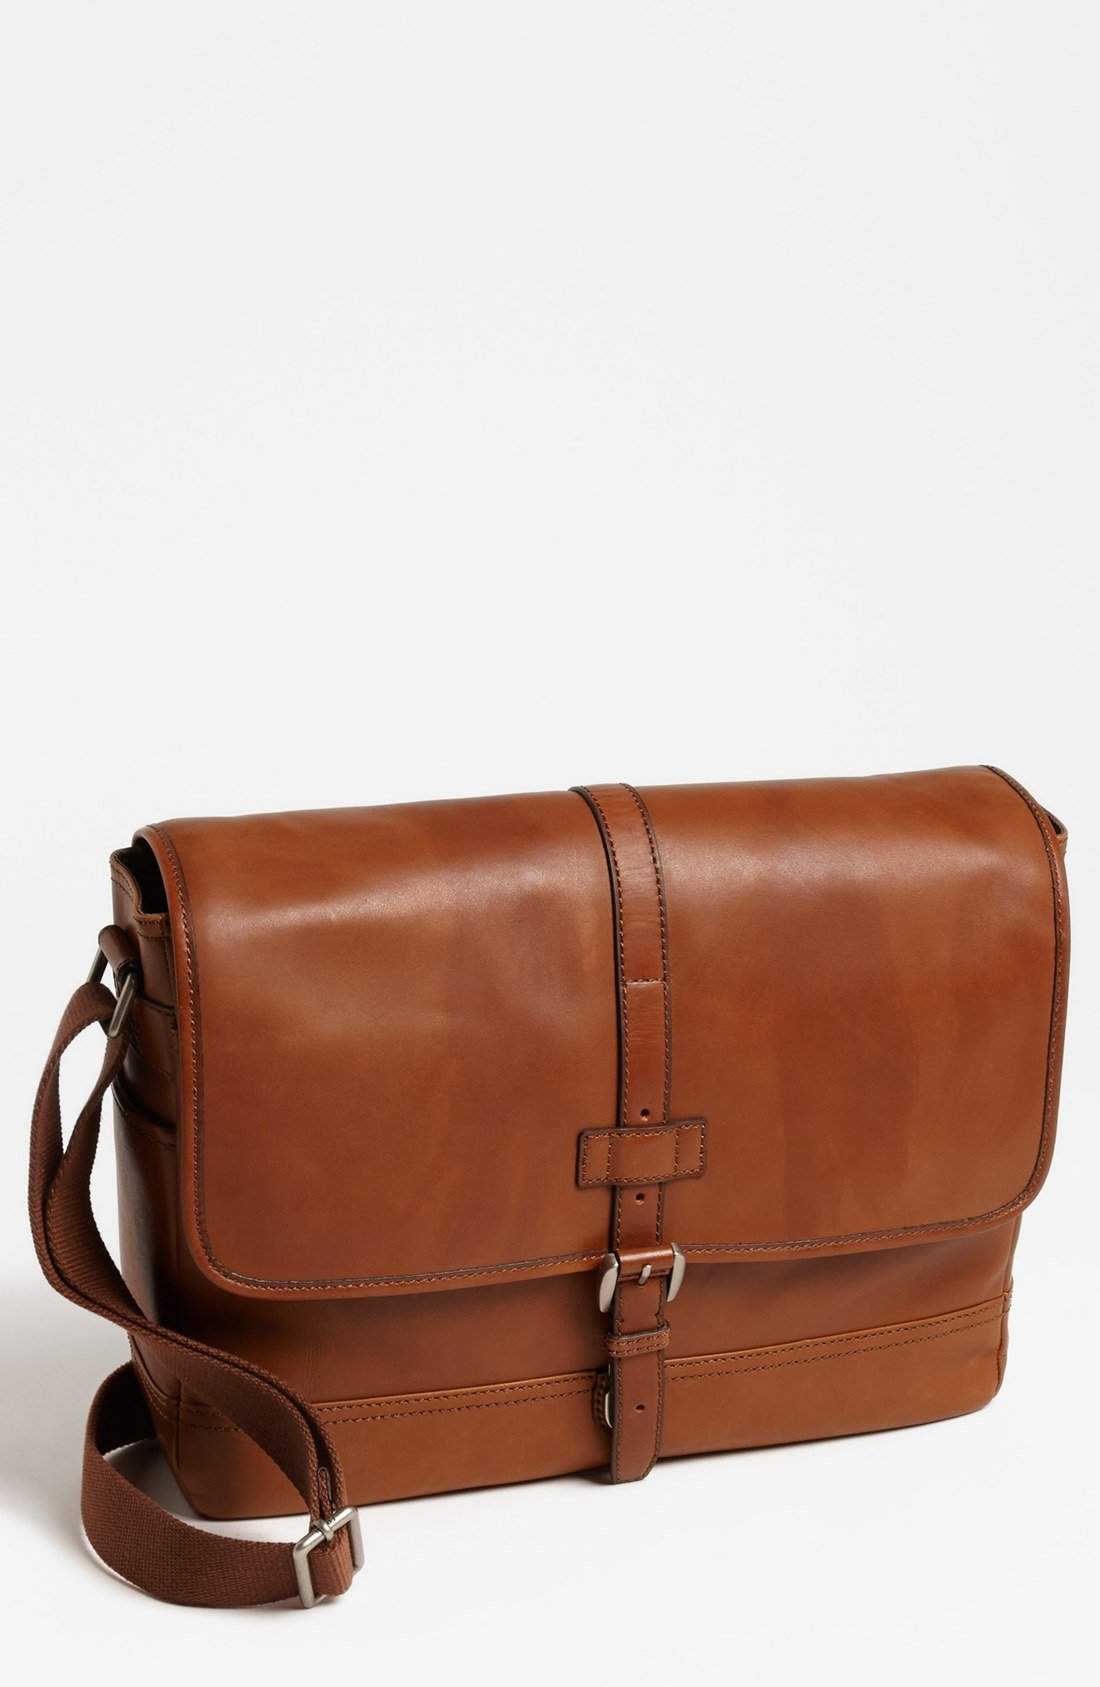 Fossil Emerson Messenger Bag In Brown For Men Lyst